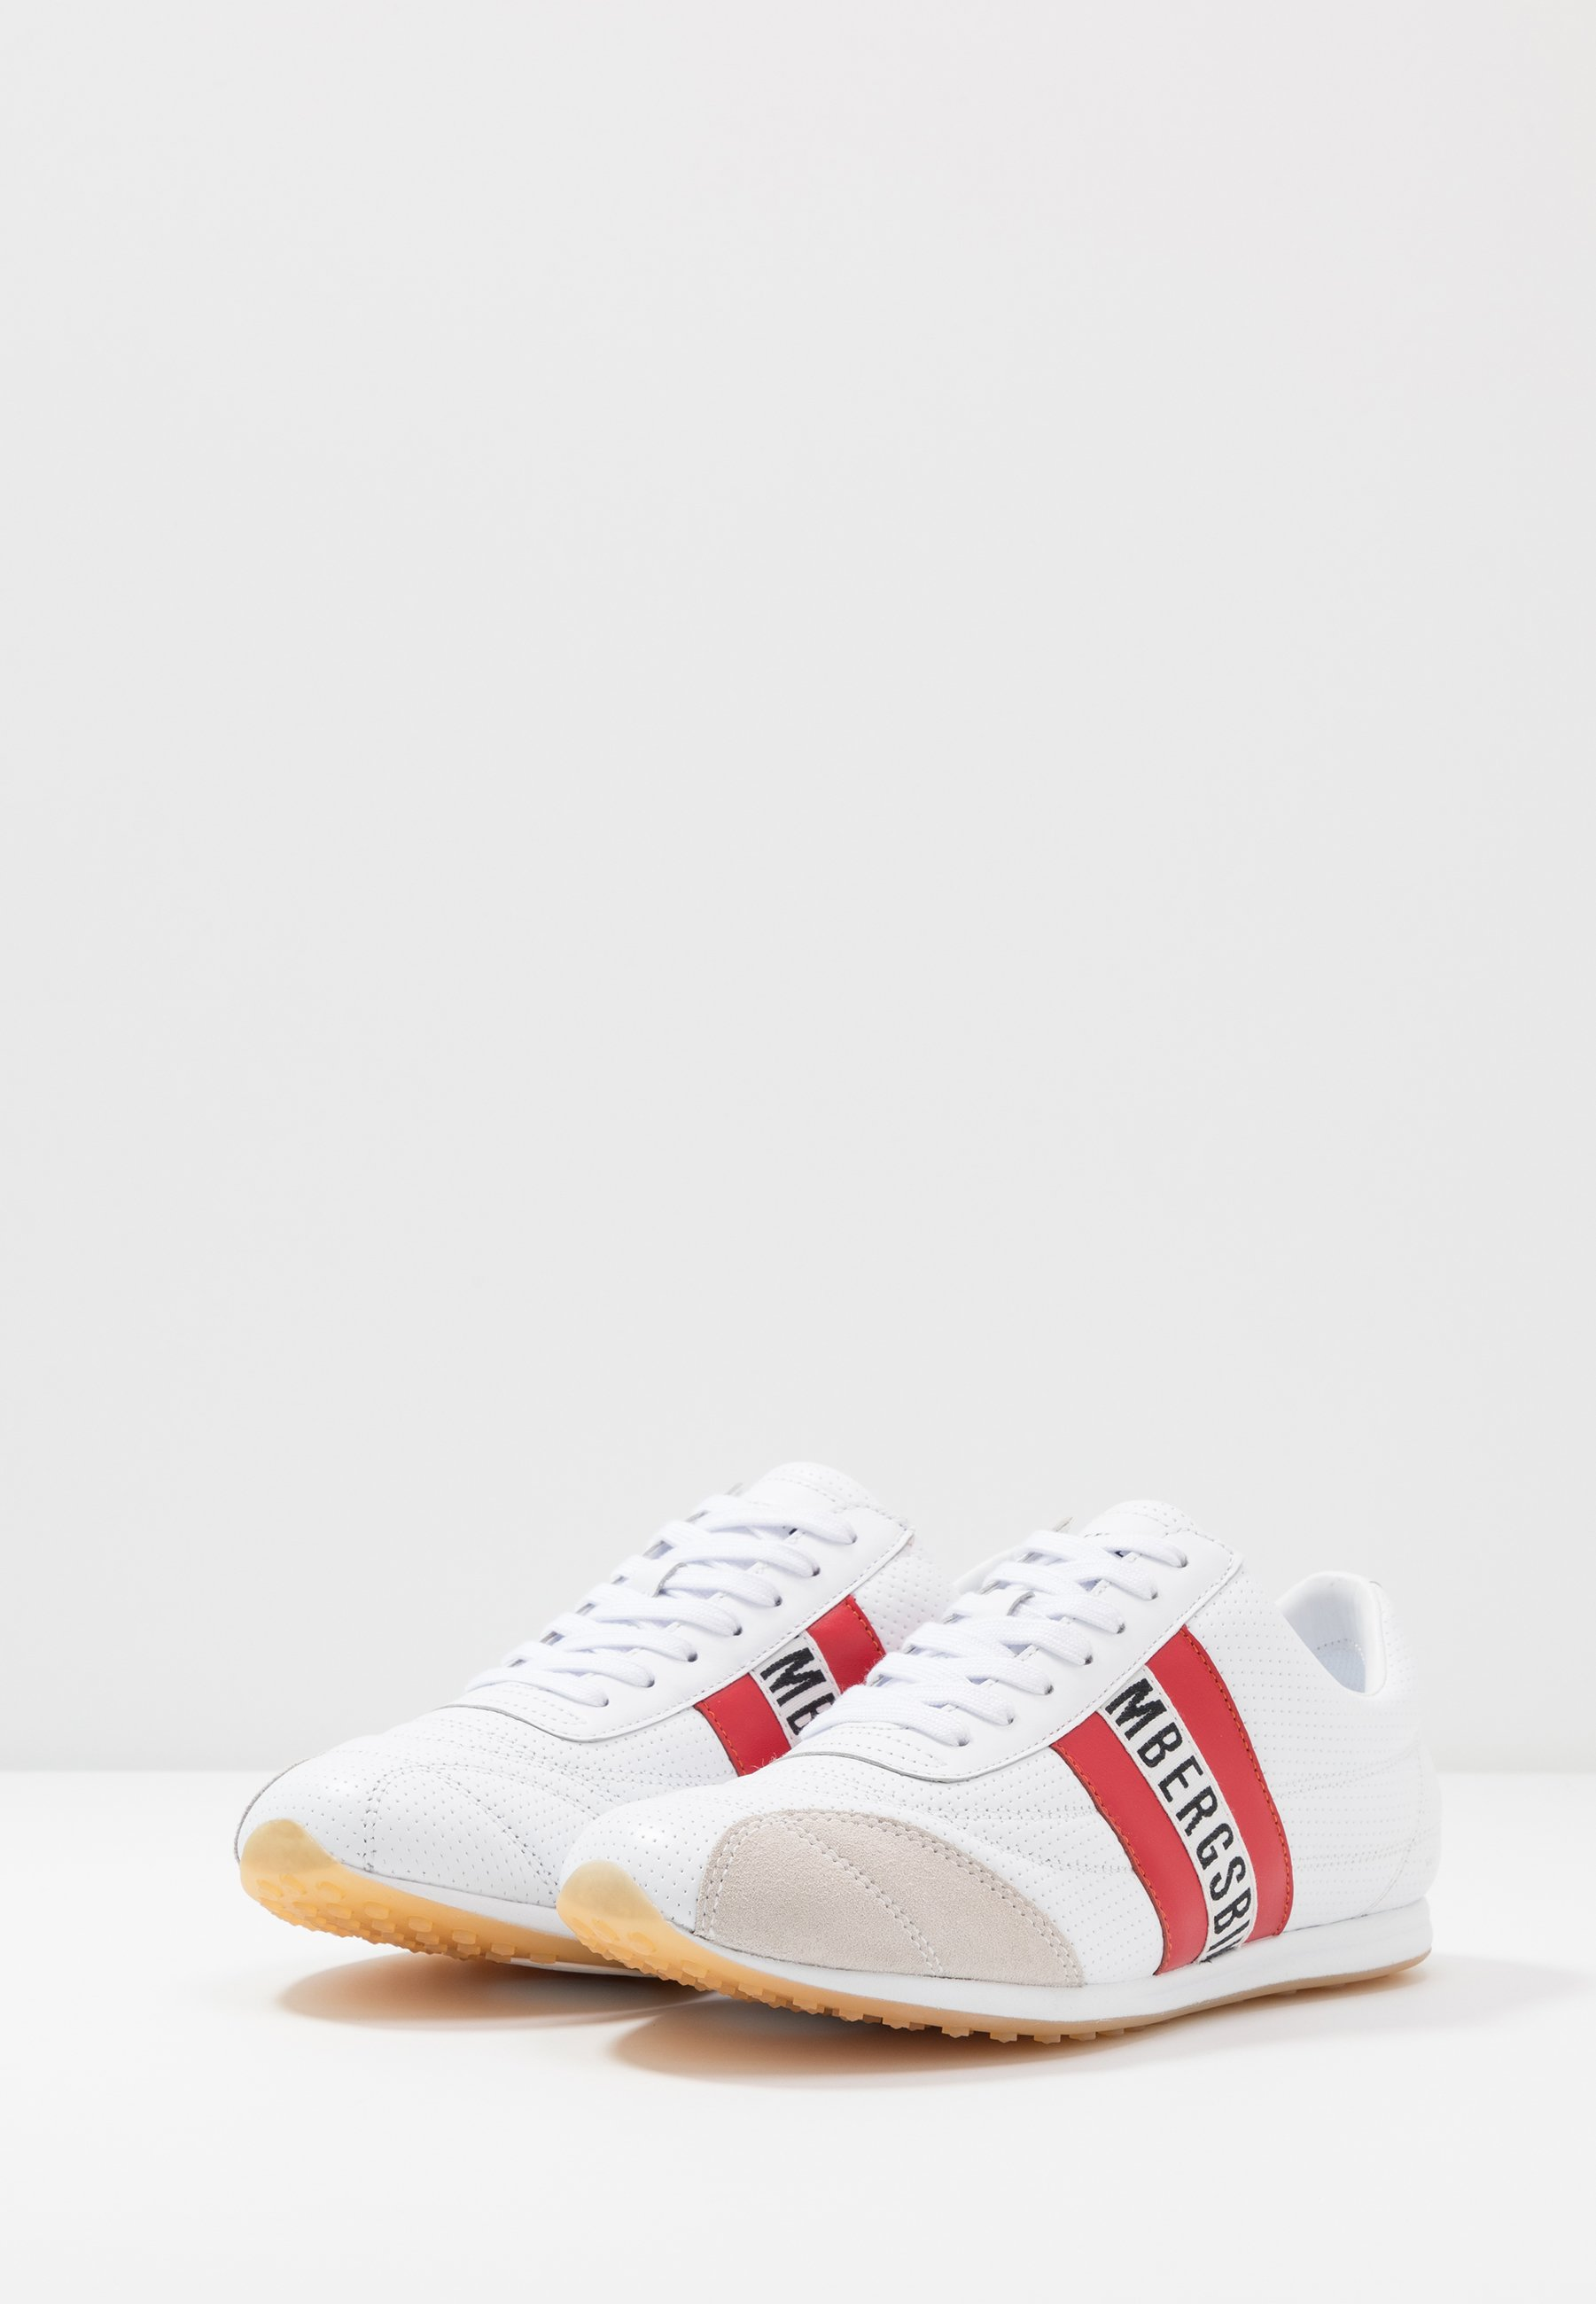 BARTHEL Sneakers whitered